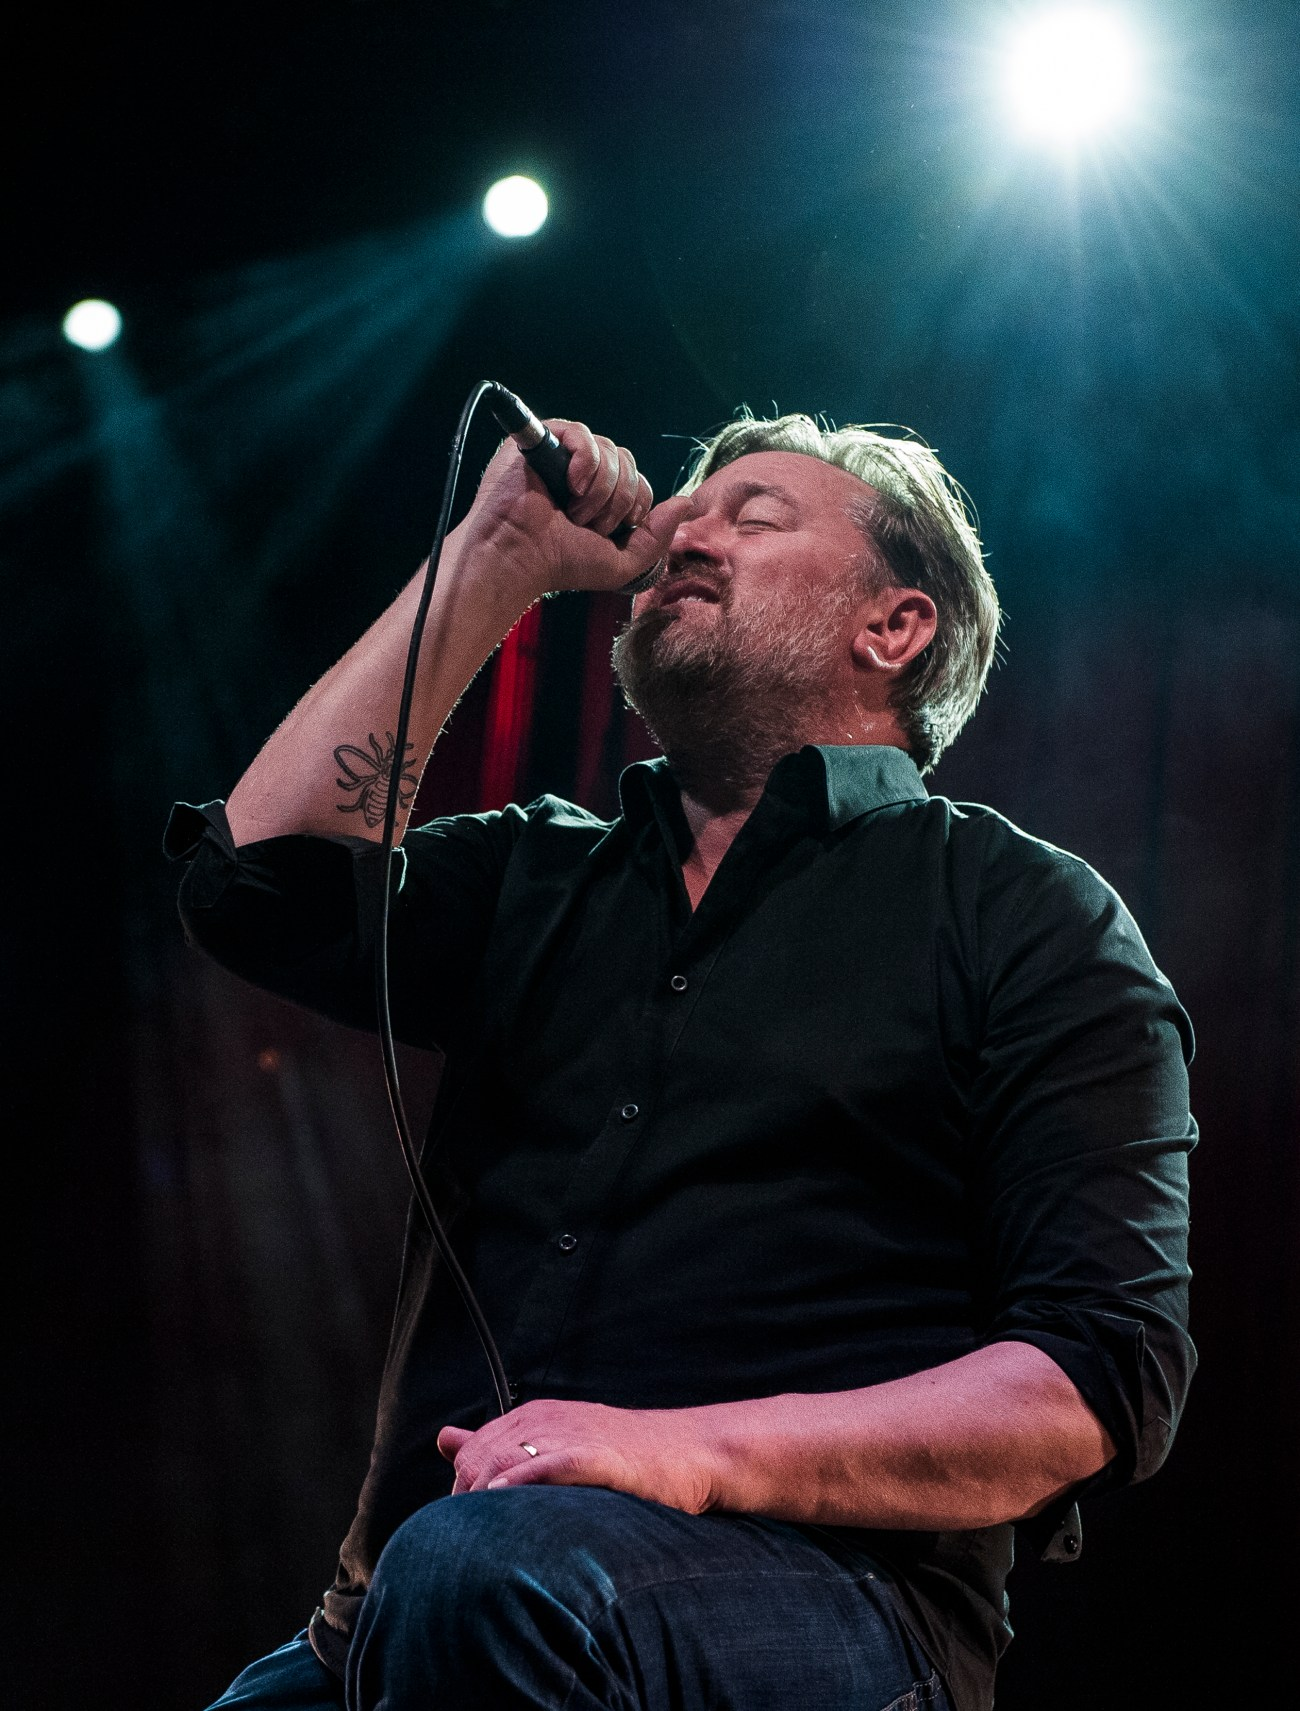 elbow the ritz manchester by mike ainscoe 15.10.19 7